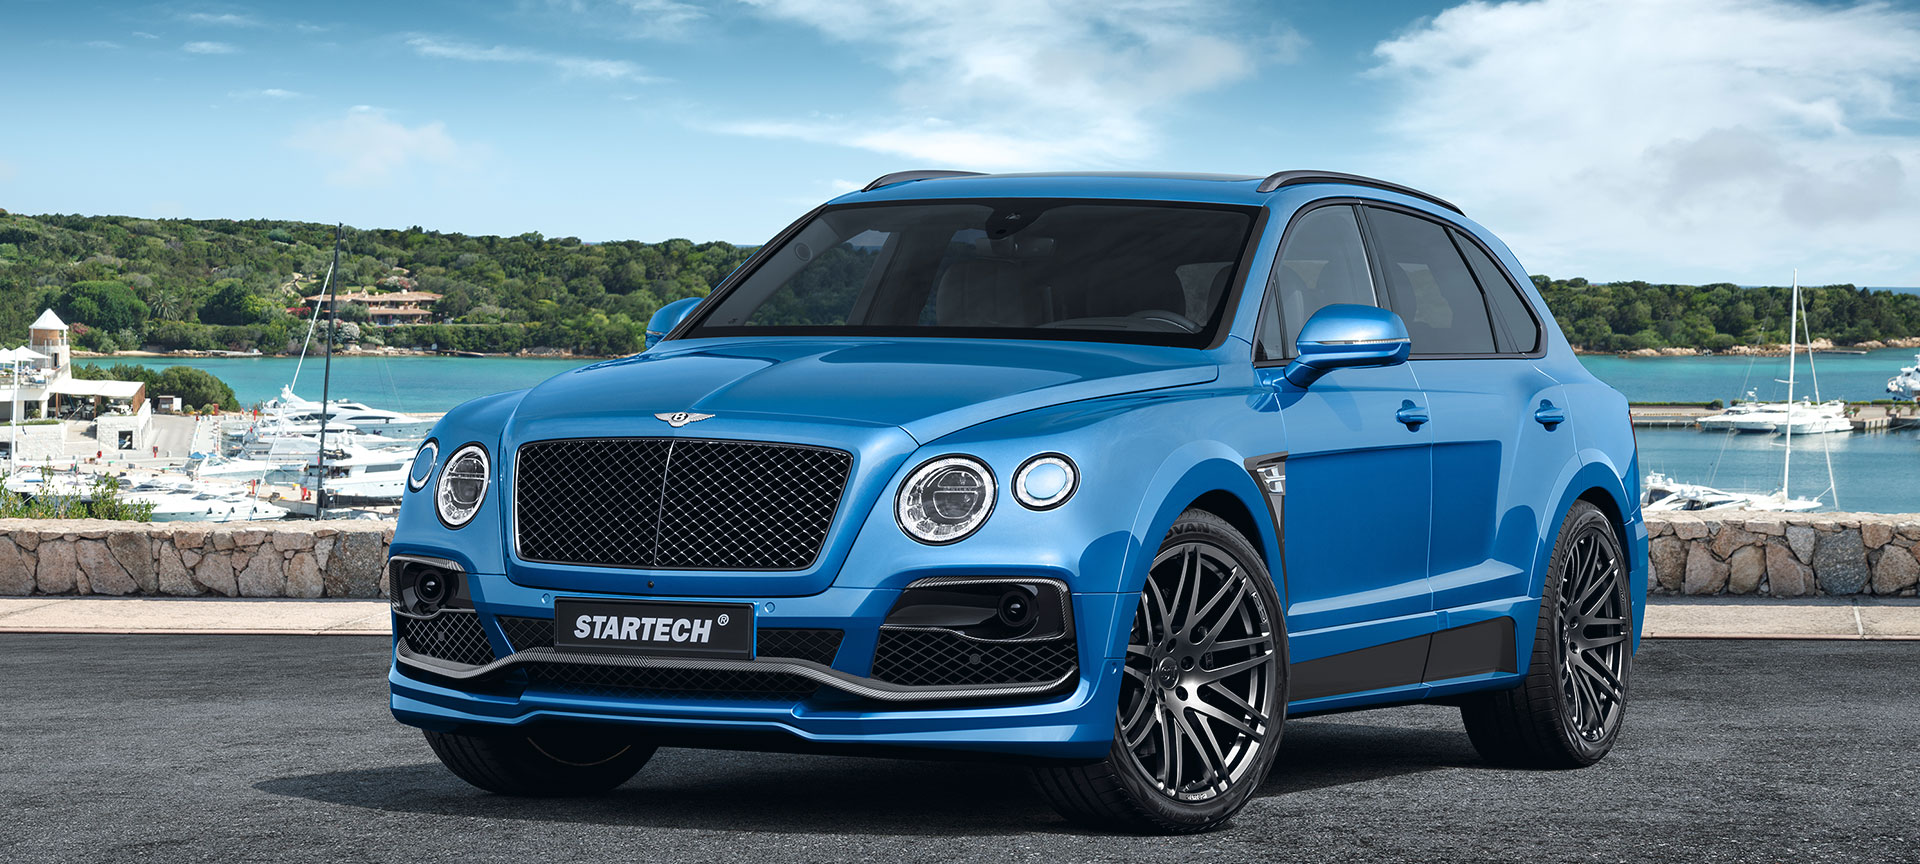 Startech News Bentley Bentayga Tuning Refinement